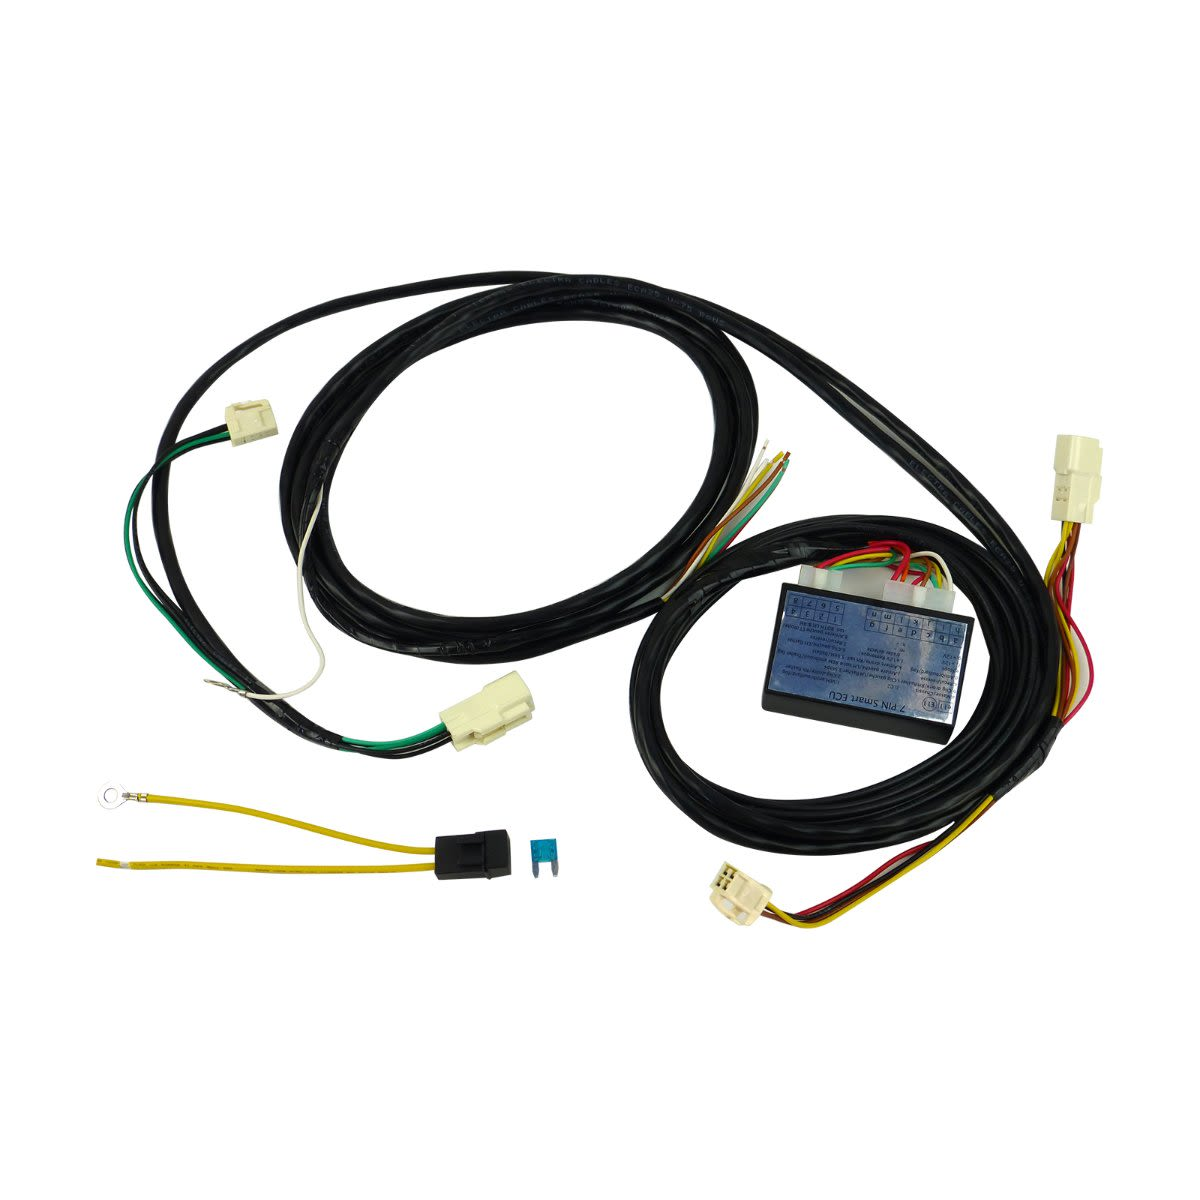 TAG Towbar Wiring Direct Fit Ecu to suit Toyota Corolla (01/2007 - 2014)